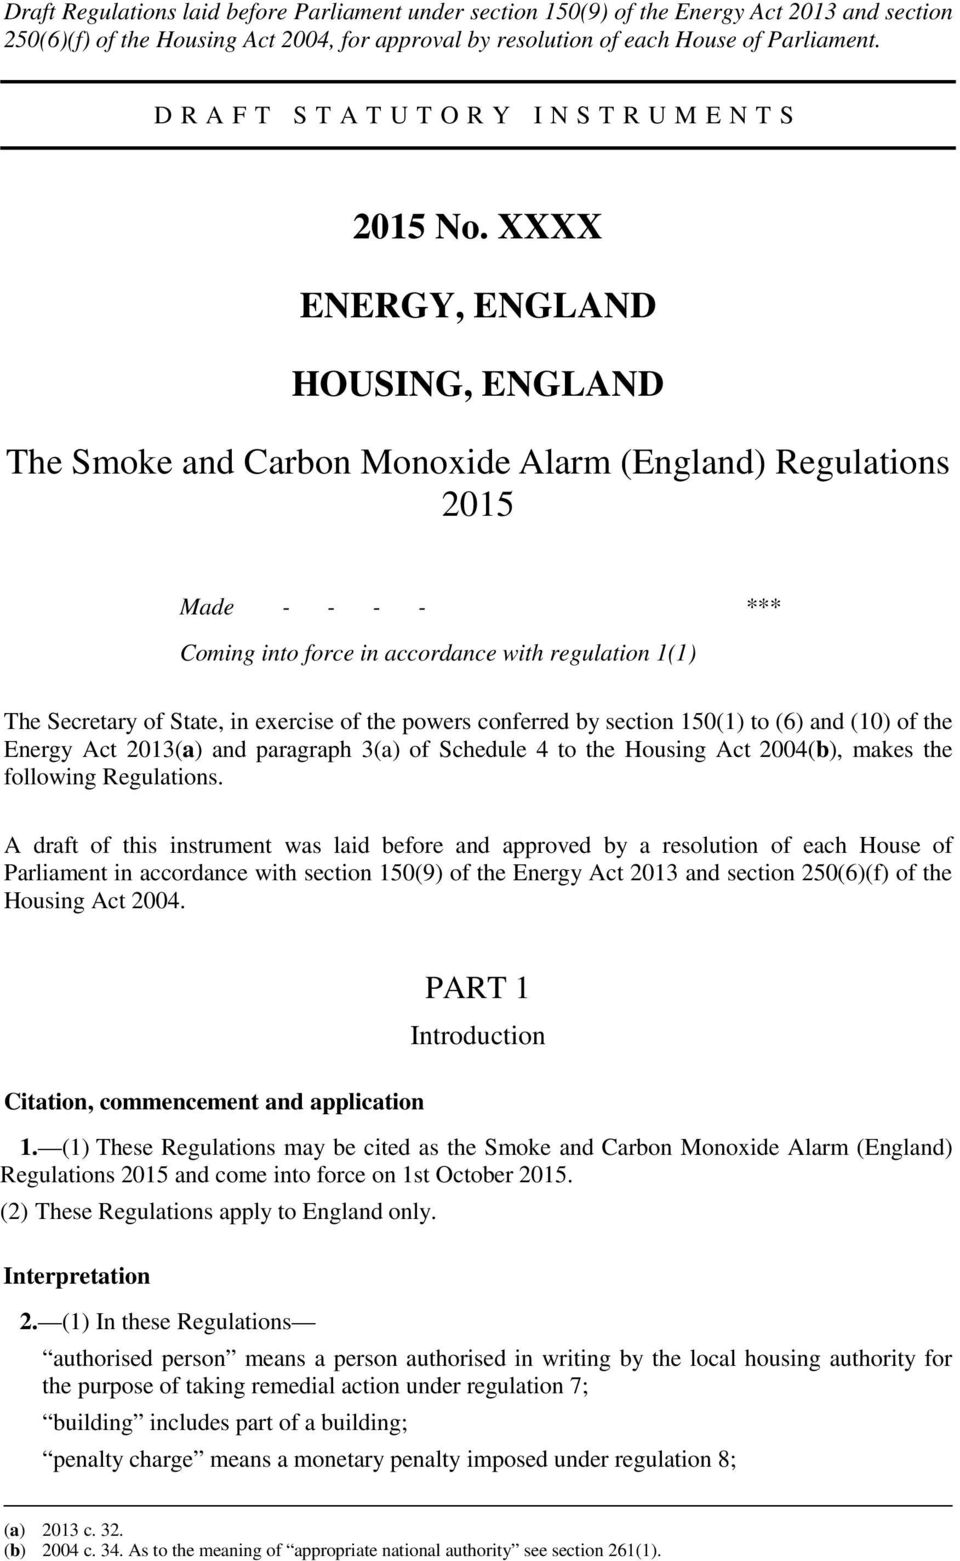 XXXX ENERGY, ENGLAND HOUSING, ENGLAND The Smoke and Carbon Monoxide Alarm (England) Regulations 2015 Made - - - - *** Coming into force in accordance with regulation 1(1) The Secretary of State, in